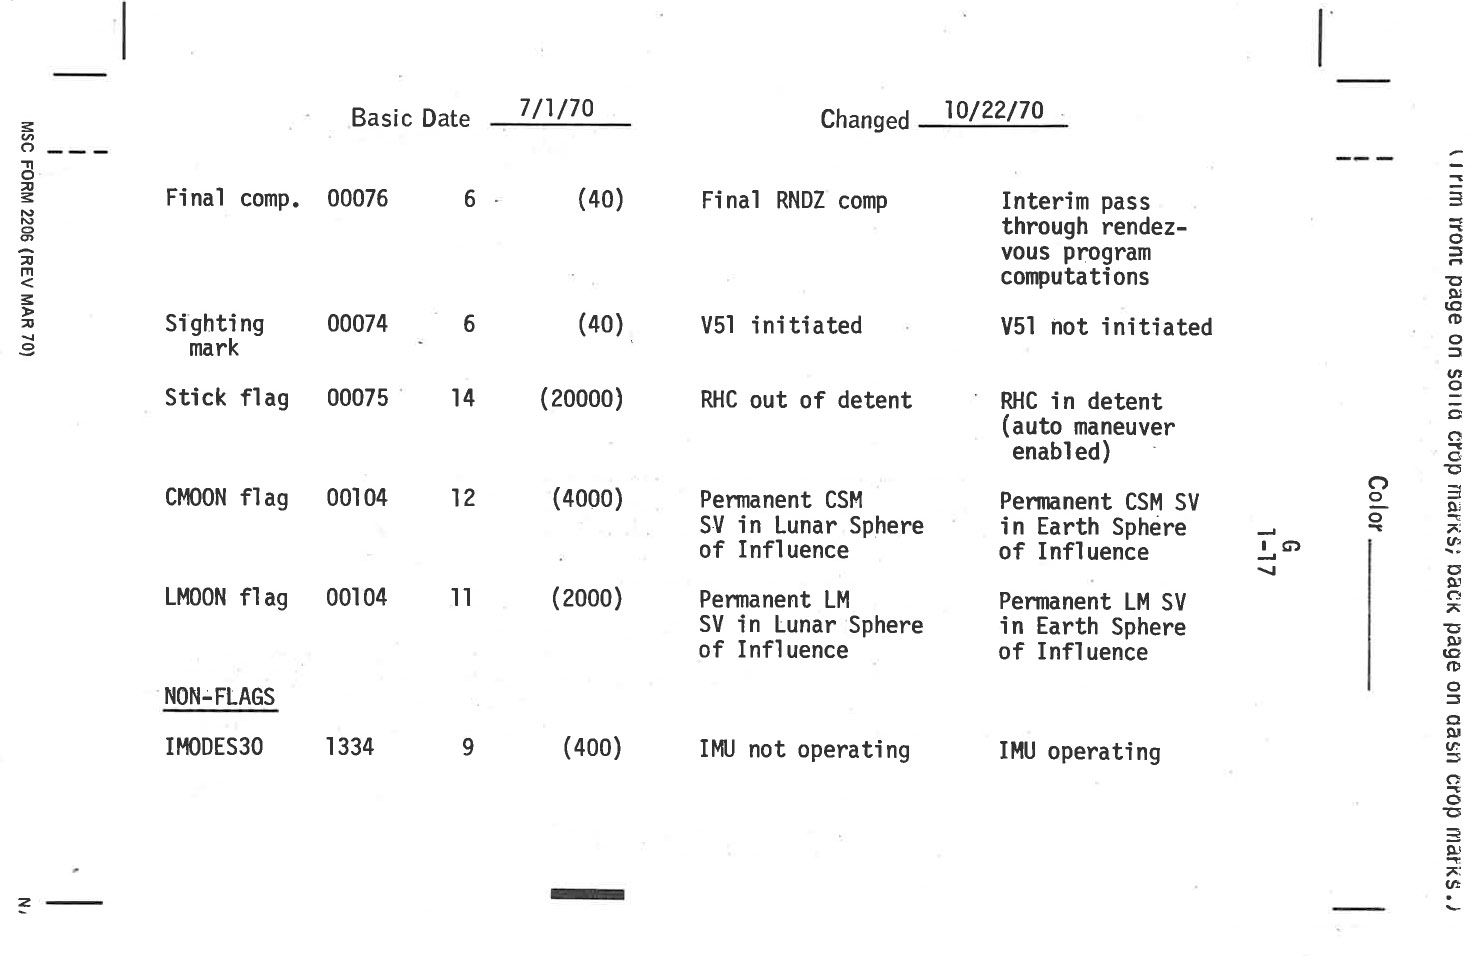 Apollo 14 flight journal csm guidance control checklist 1 18 octal to binary conversion nvjuhfo Choice Image